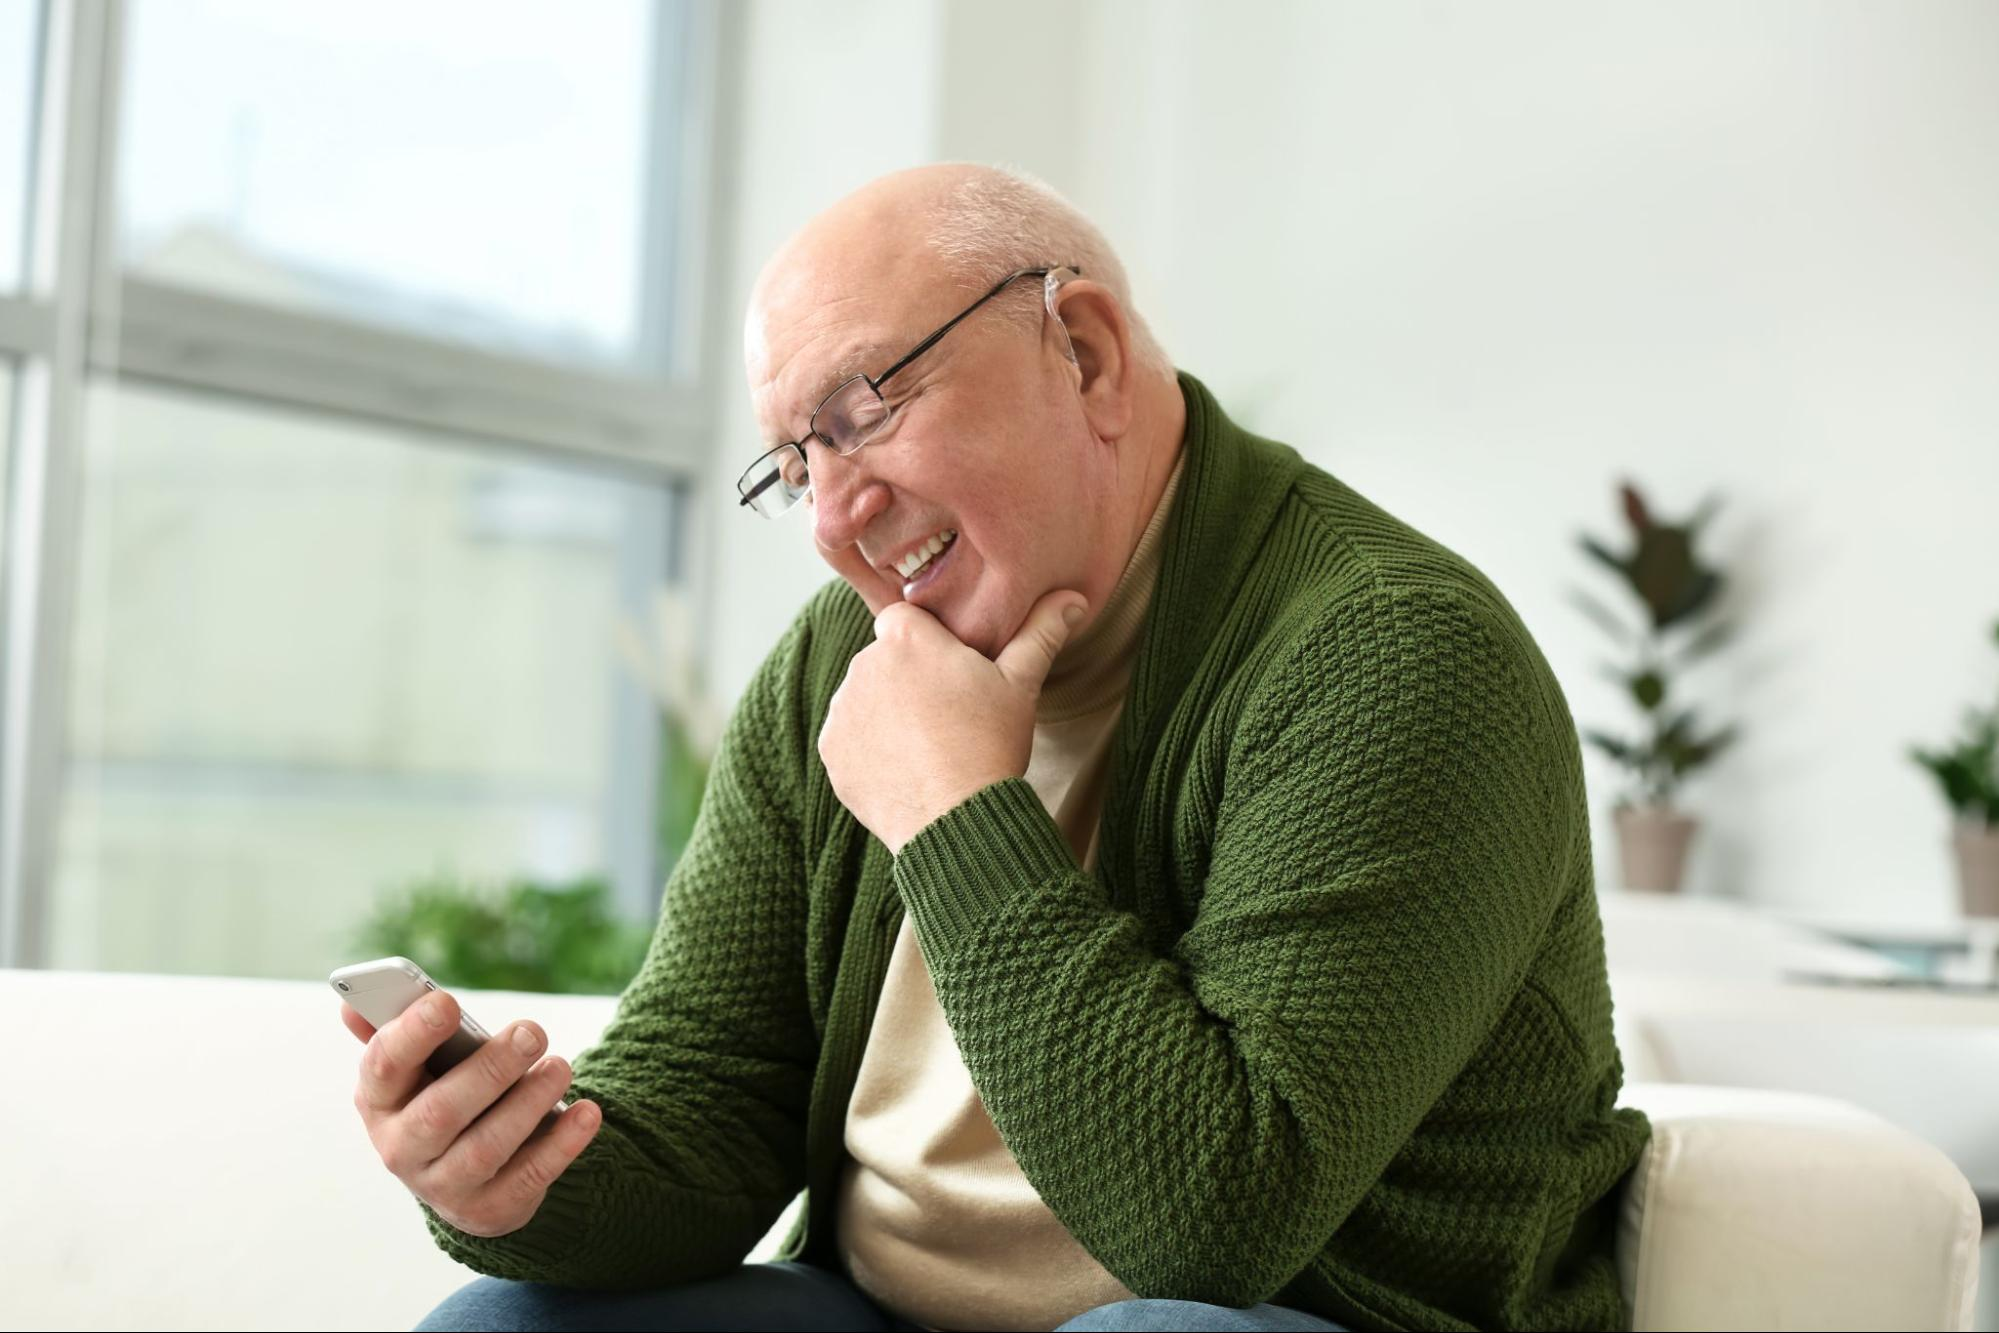 Hearing Care Solutions: old man smiling while looking at his phone